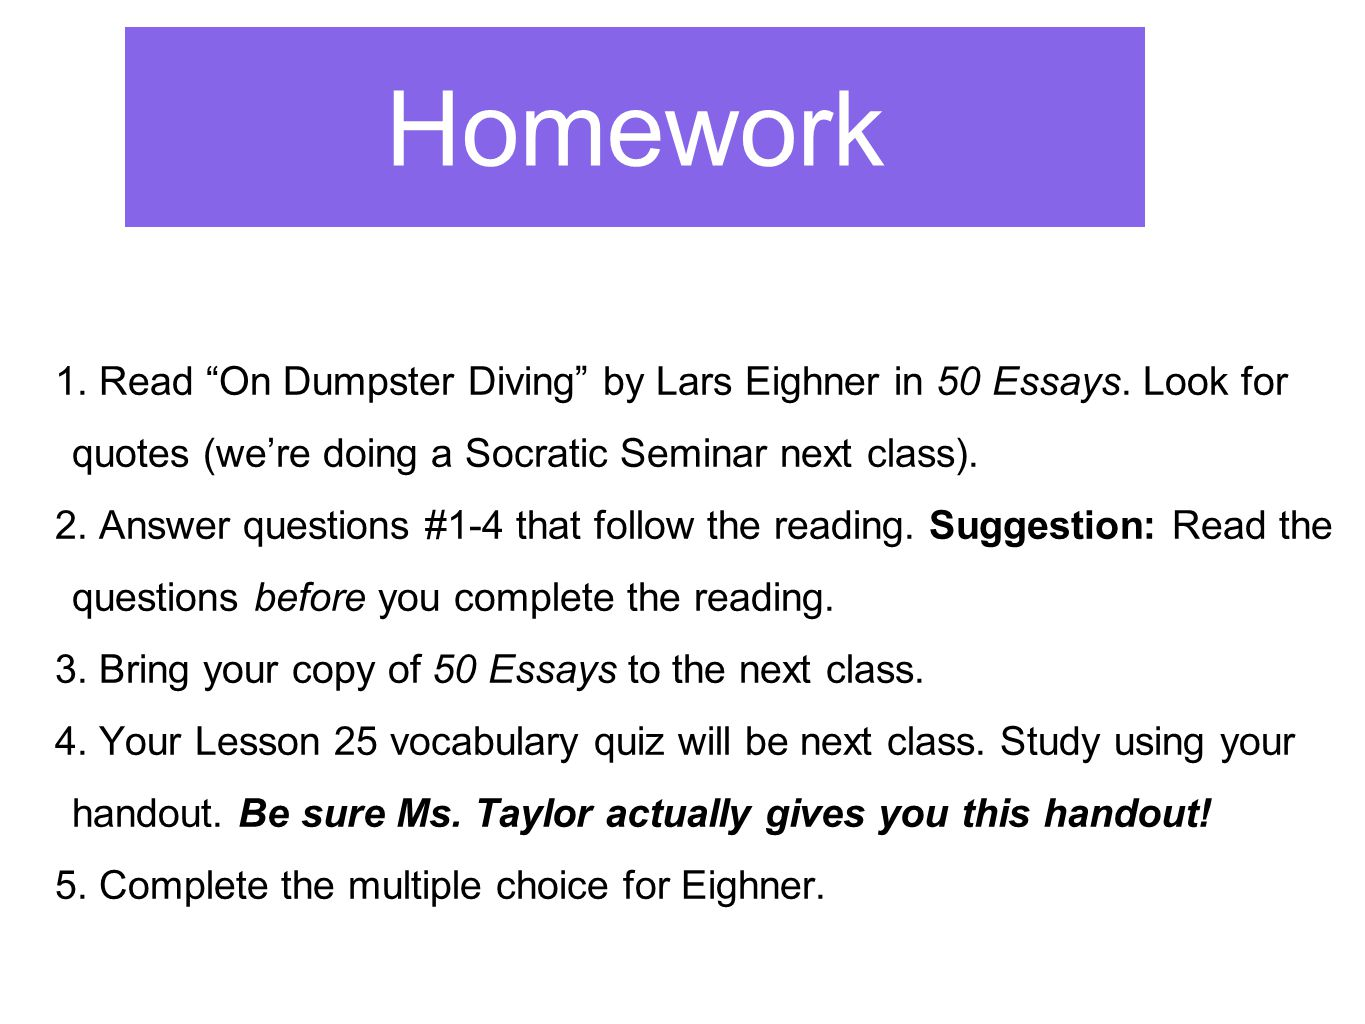 Types Of English Essays Homework Read On Dumpster Diving By Lars Eighner In  Essays Look For  Quotes  High School Entrance Essays also Examples Of Good Essays In English Week  Ap Language  Ppt Video Online Download Business Essays Samples